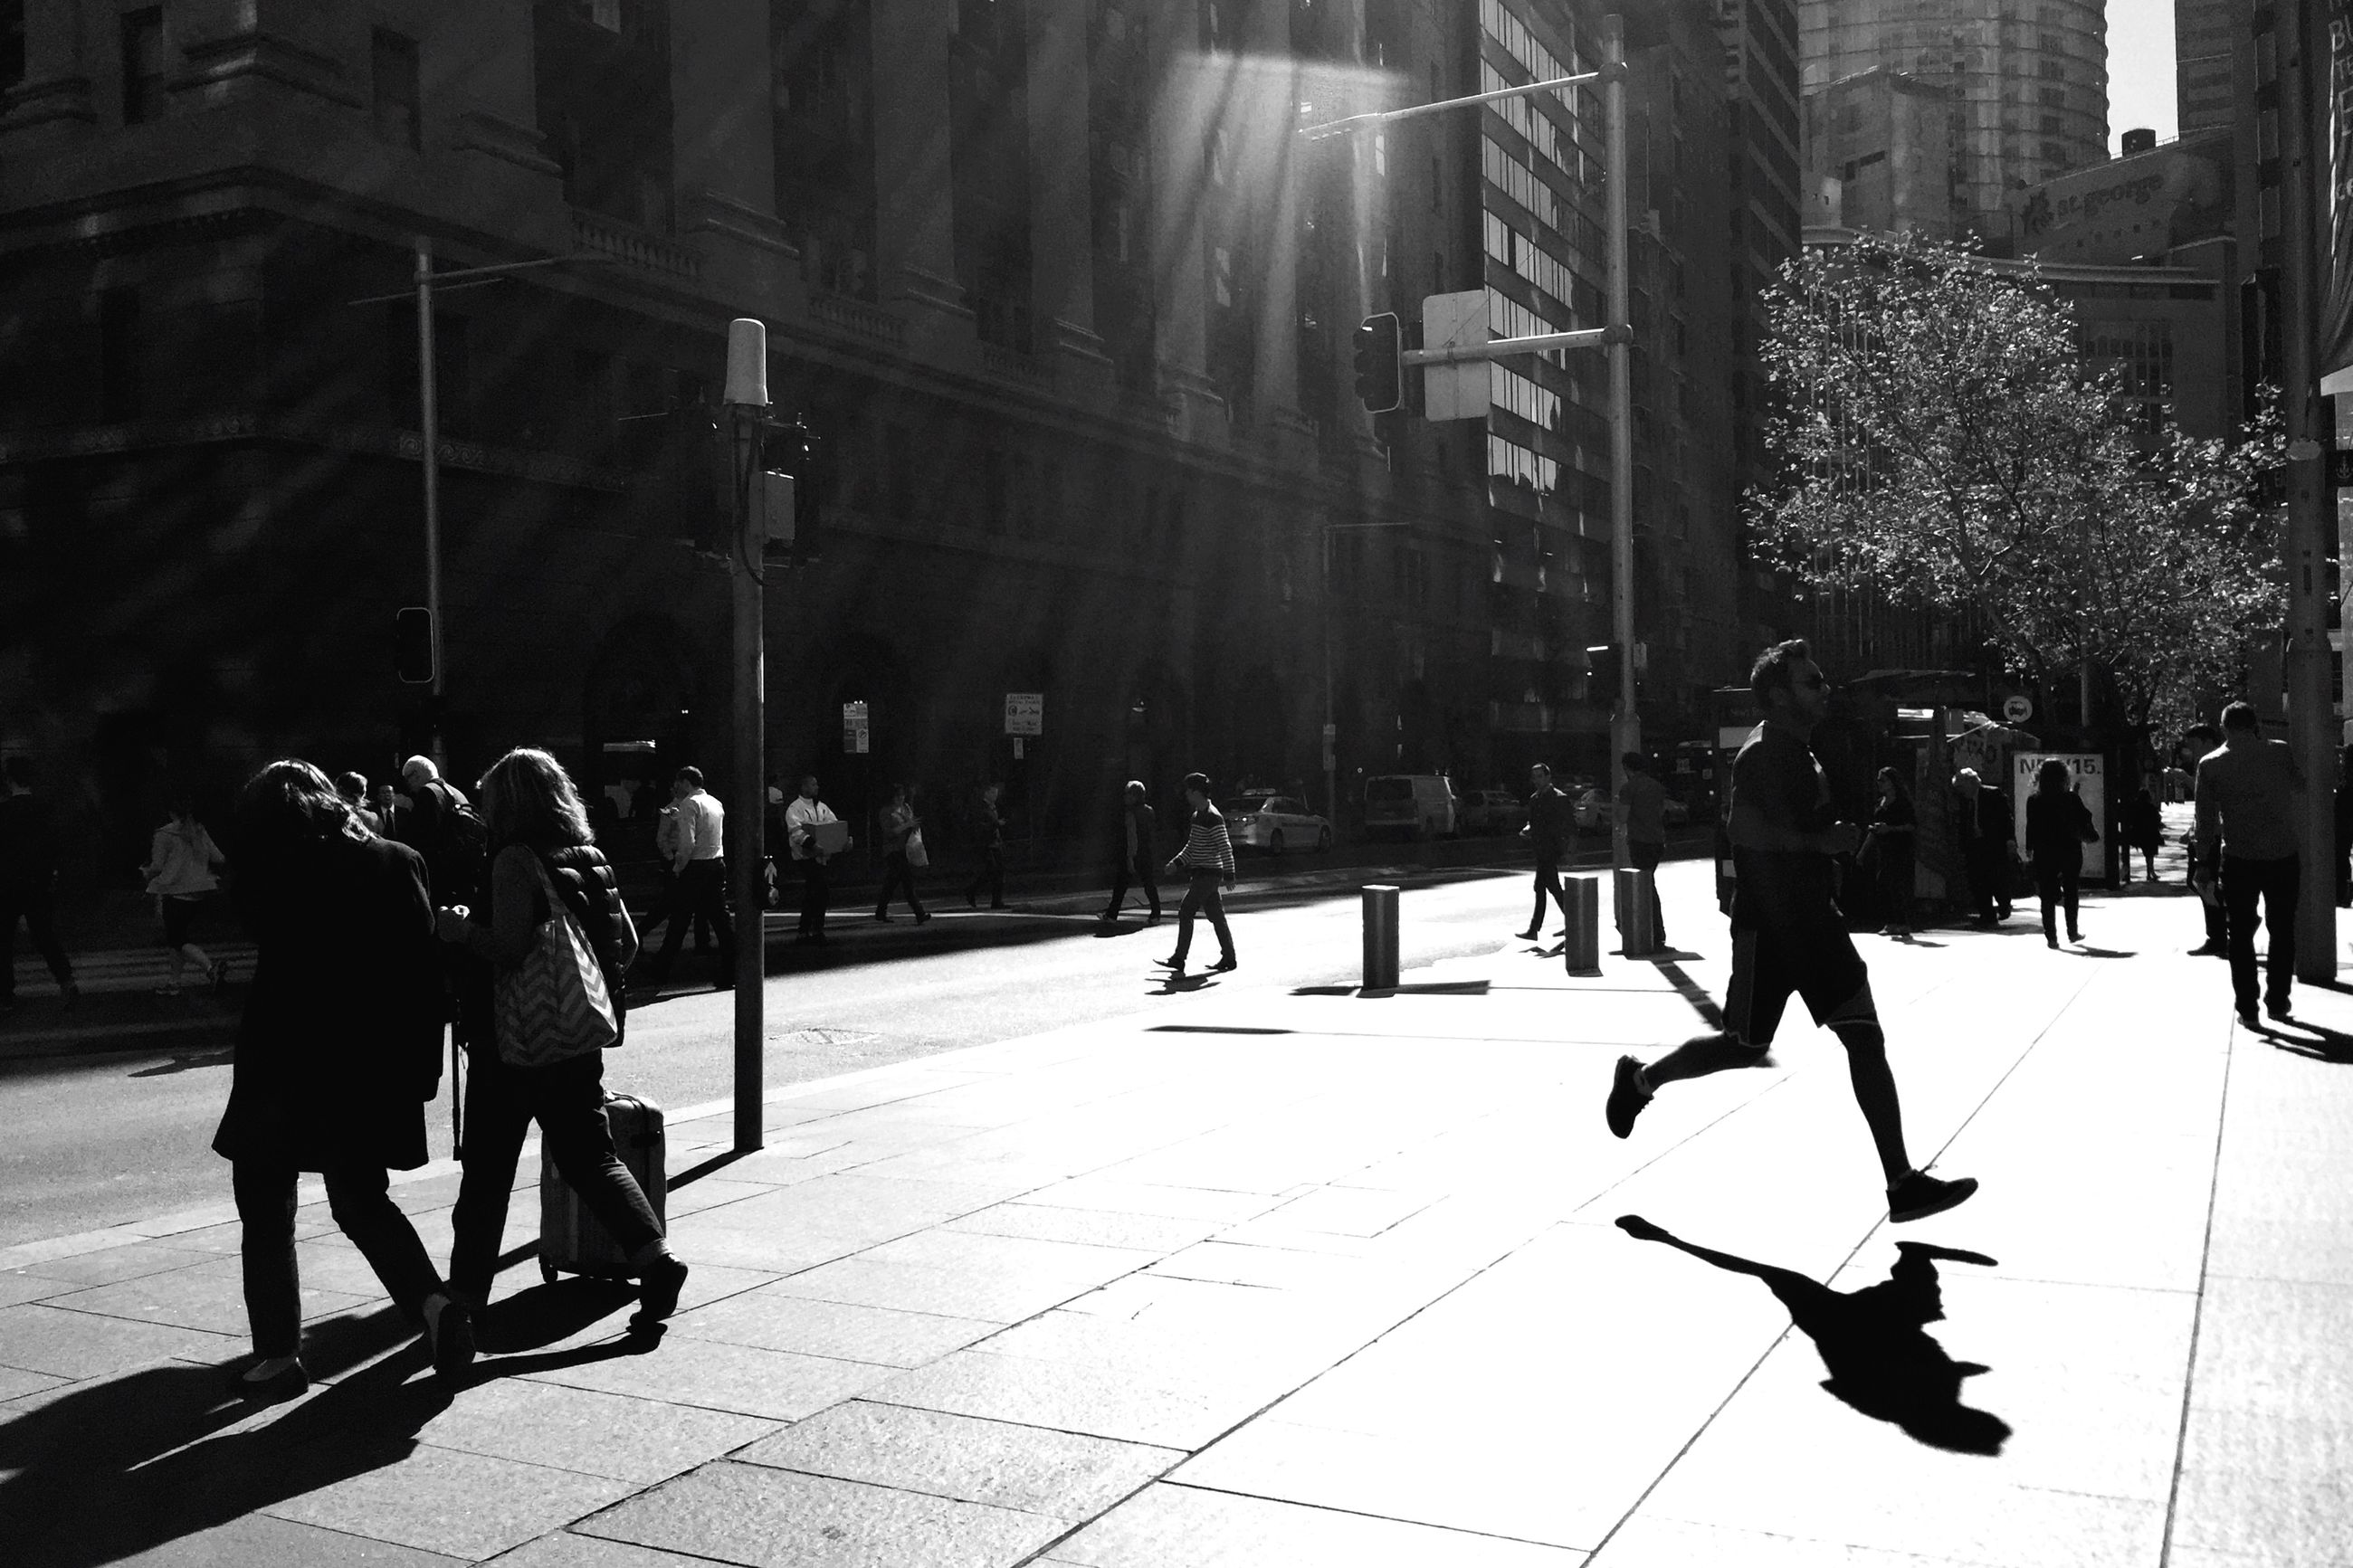 walking, men, street, lifestyles, city, person, city life, full length, large group of people, building exterior, rear view, leisure activity, sidewalk, city street, built structure, architecture, road, tree, on the move